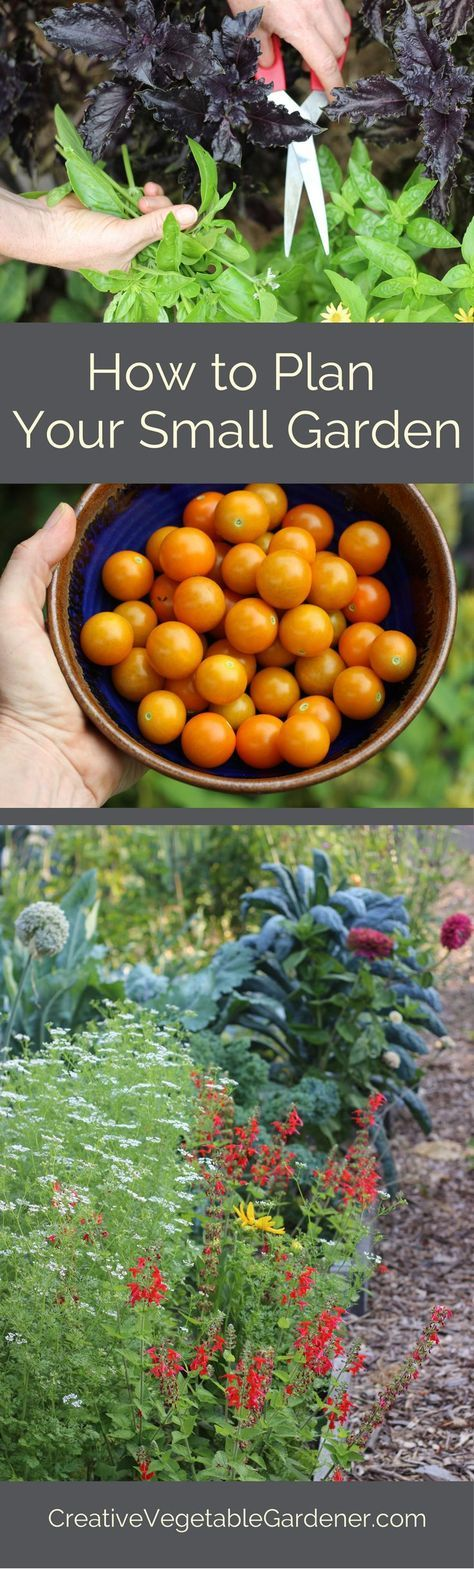 tips for planning your small vegetable garden - Small Vegetable Garden Ideas Pictures